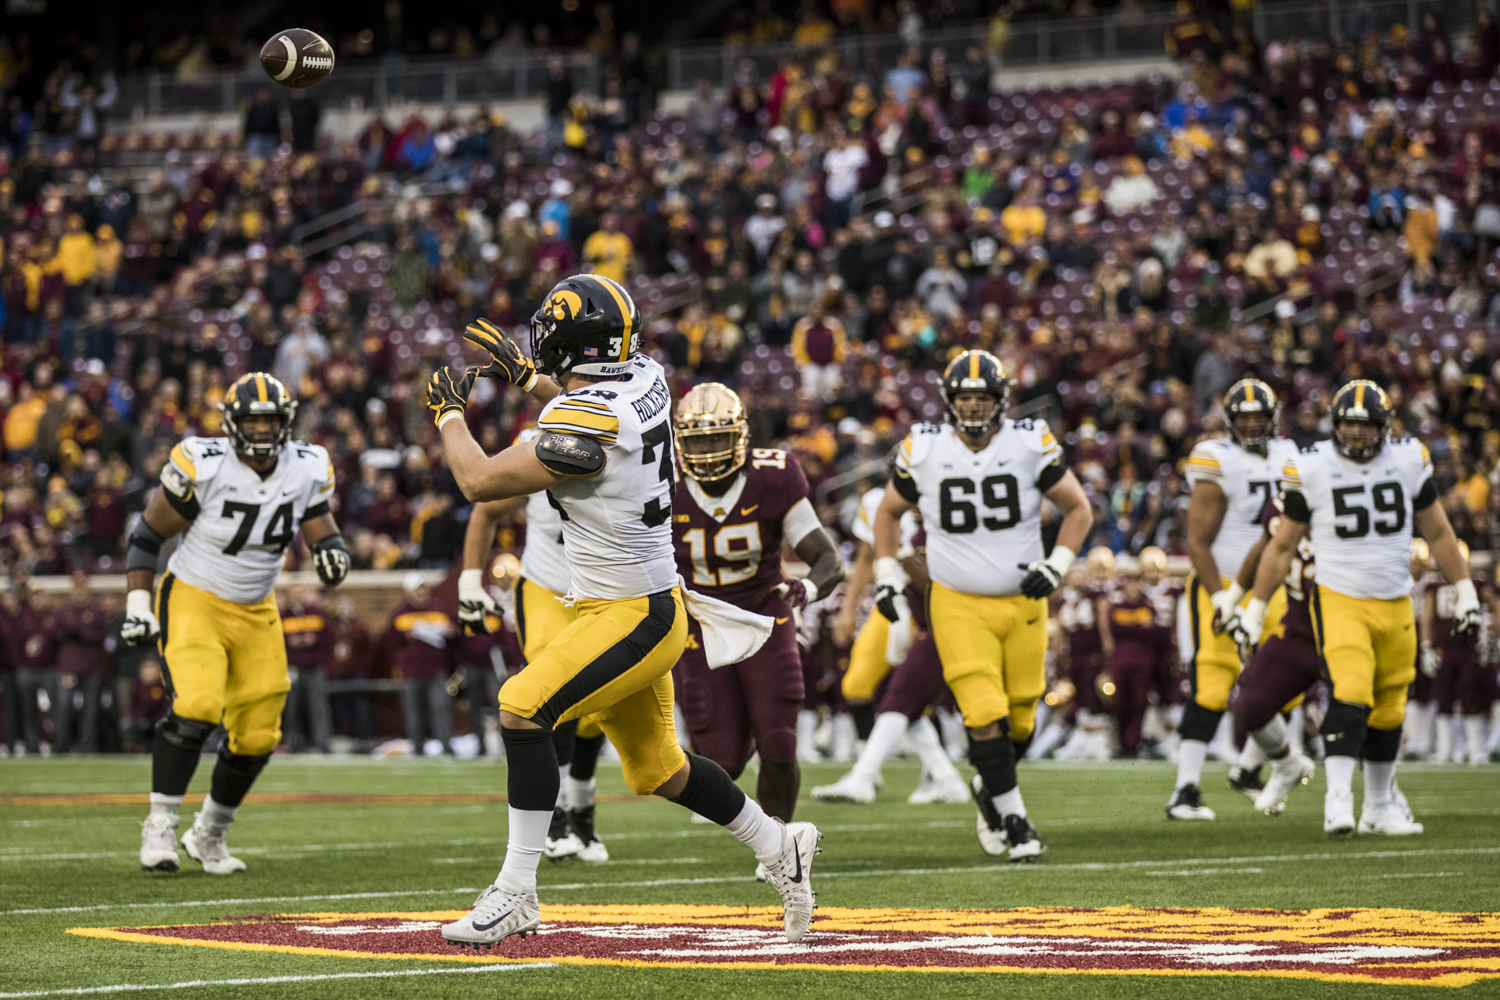 Iowa+tight+end+T.J.+Hockenson+makes+a+catch+during+Iowa%27s+game+against+Minnesota+at+TCF+Bank+Stadium+on+Saturday%2C+October+6%2C+2018.+The+Hawkeyes+defeated+the+Golden+Gophers+48-31.